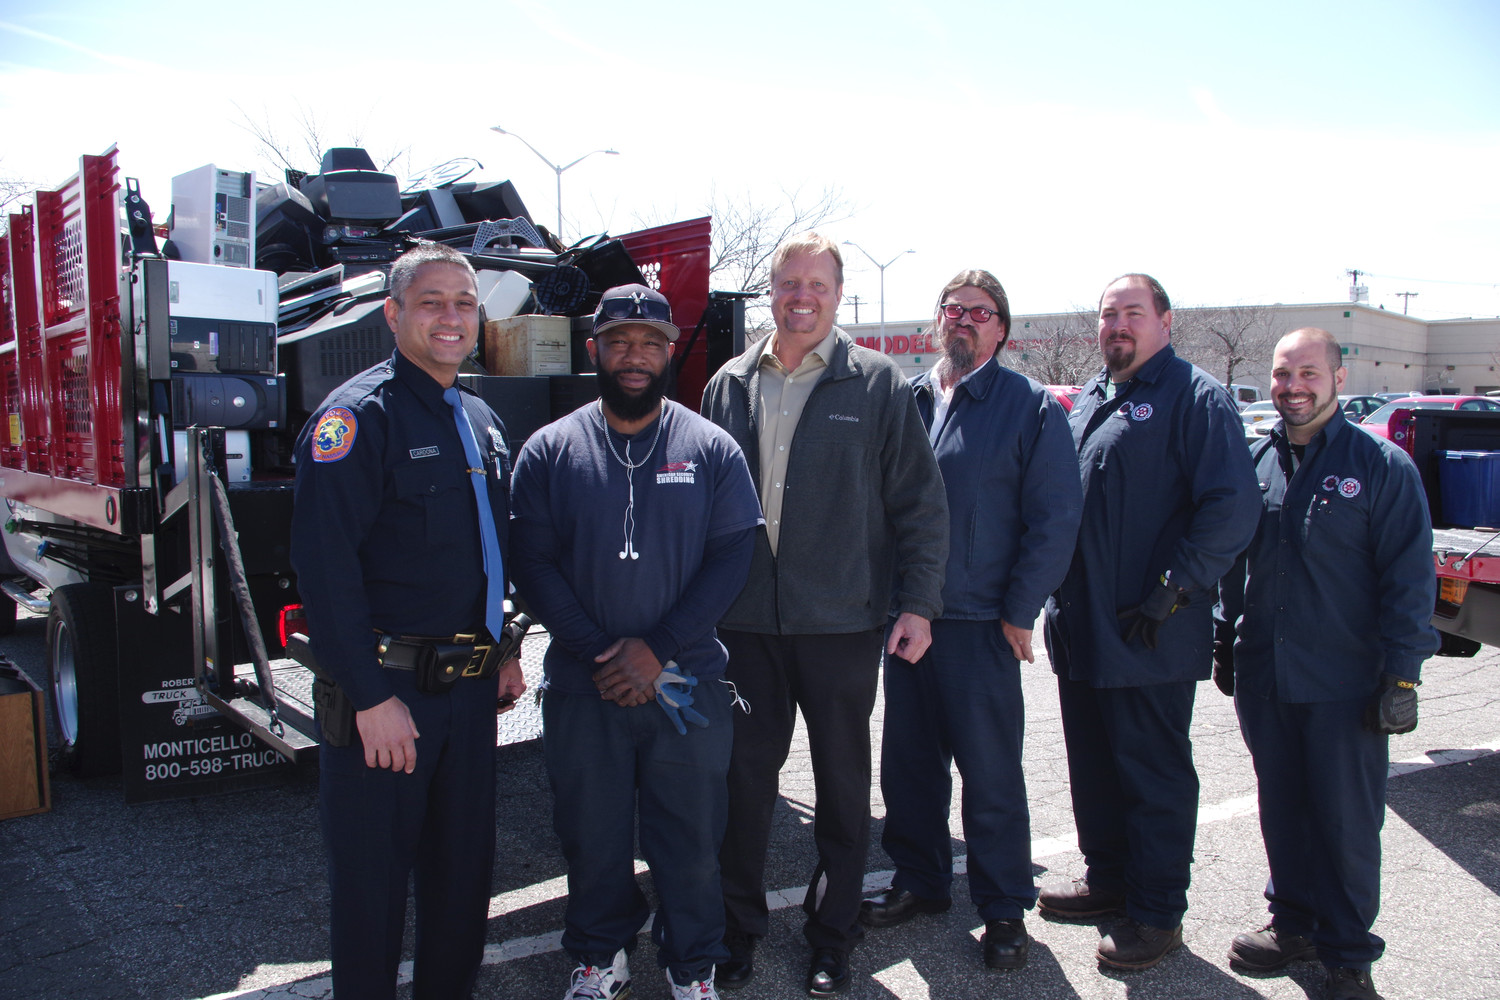 Officer Cardona, left, Tajahn Thomas, Sanitation Supervisor Dan Faust, Louis Catalanotto Jr., David Johnson and Matthew Amato.